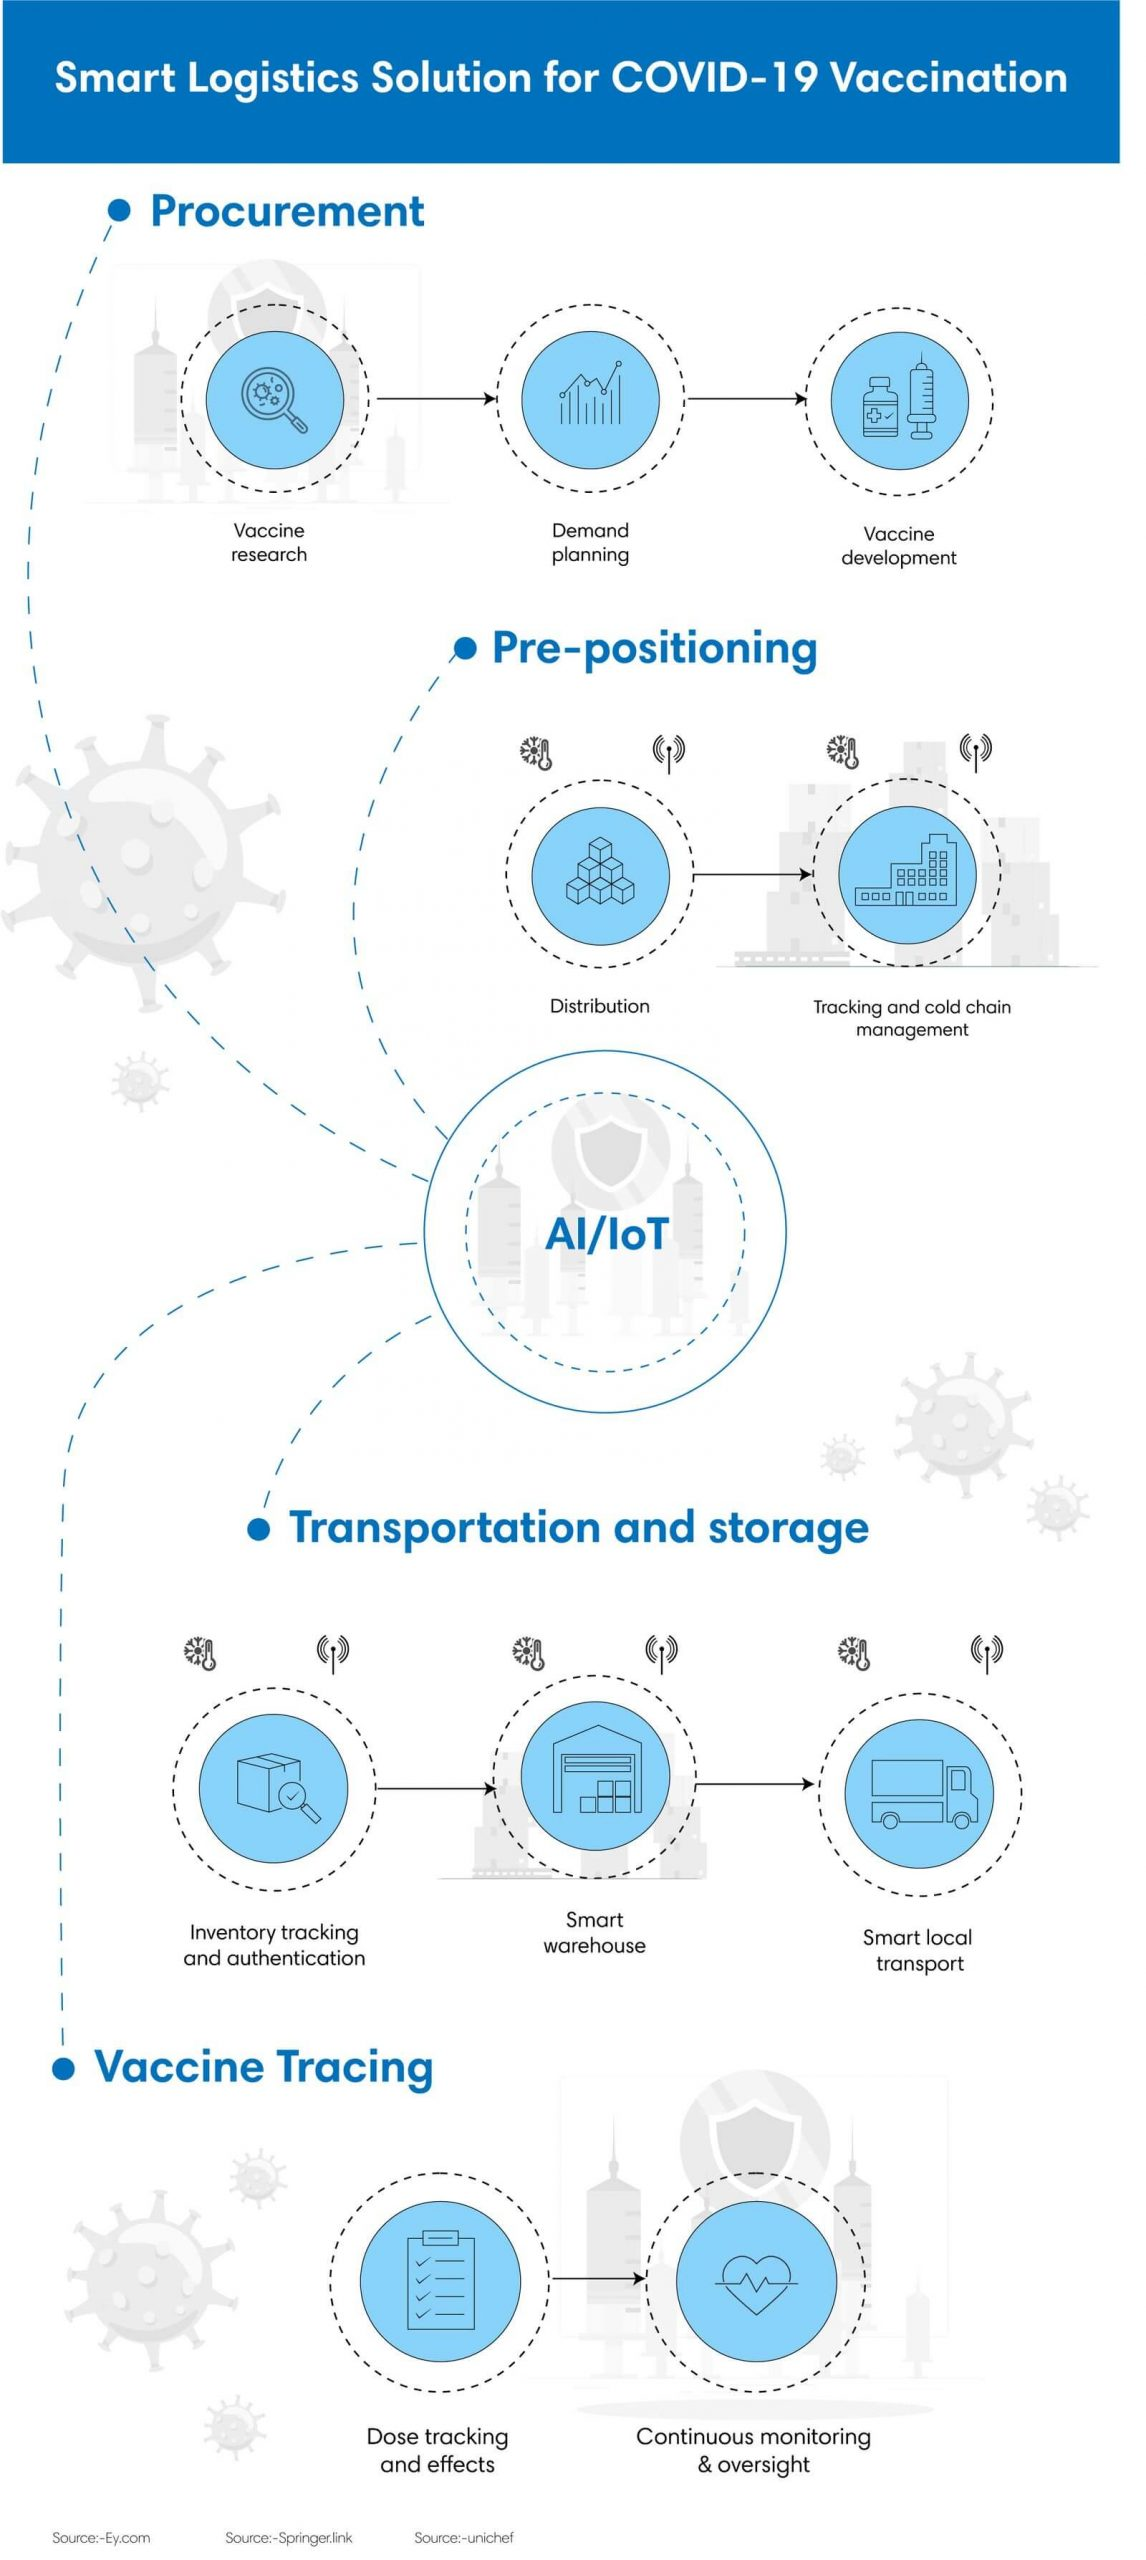 Smart Logistics Solutions for Covid 19 Vaccination